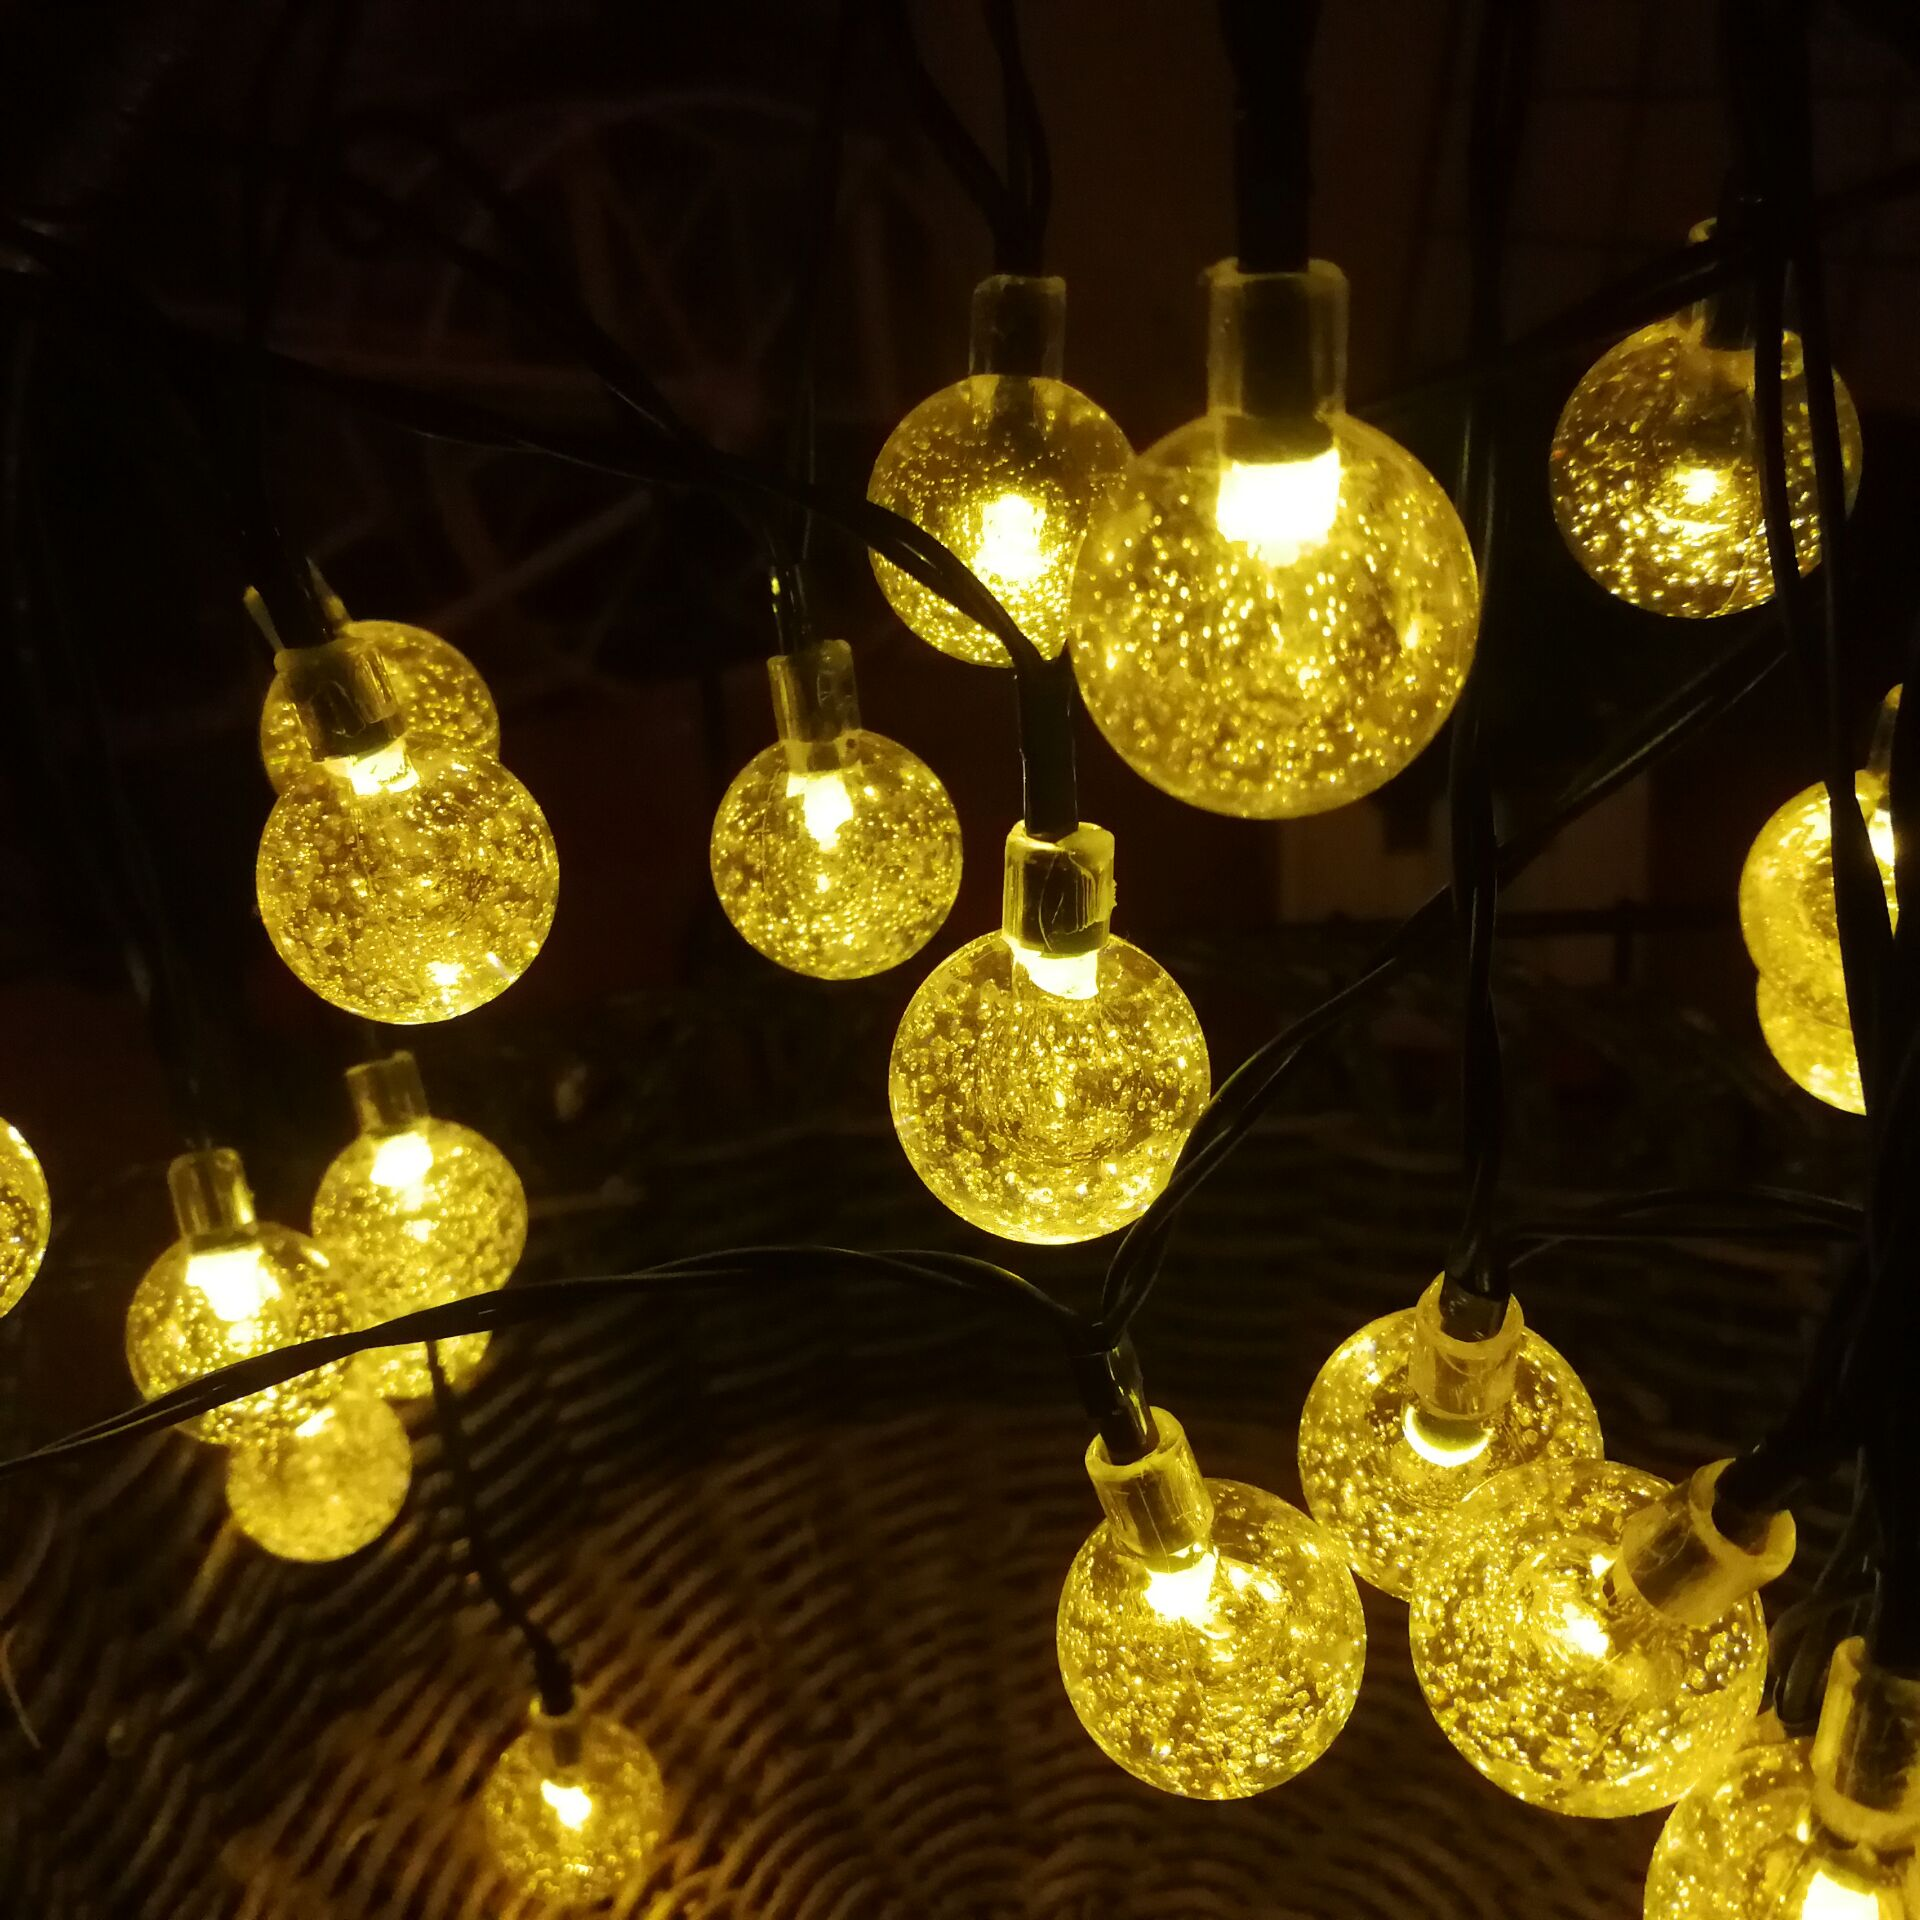 LED Fairy Lights Crystal Ball Garland Solar Garden String Lights Outdoor Waterproof Bulbs Twinkle Christmas Party Decoration